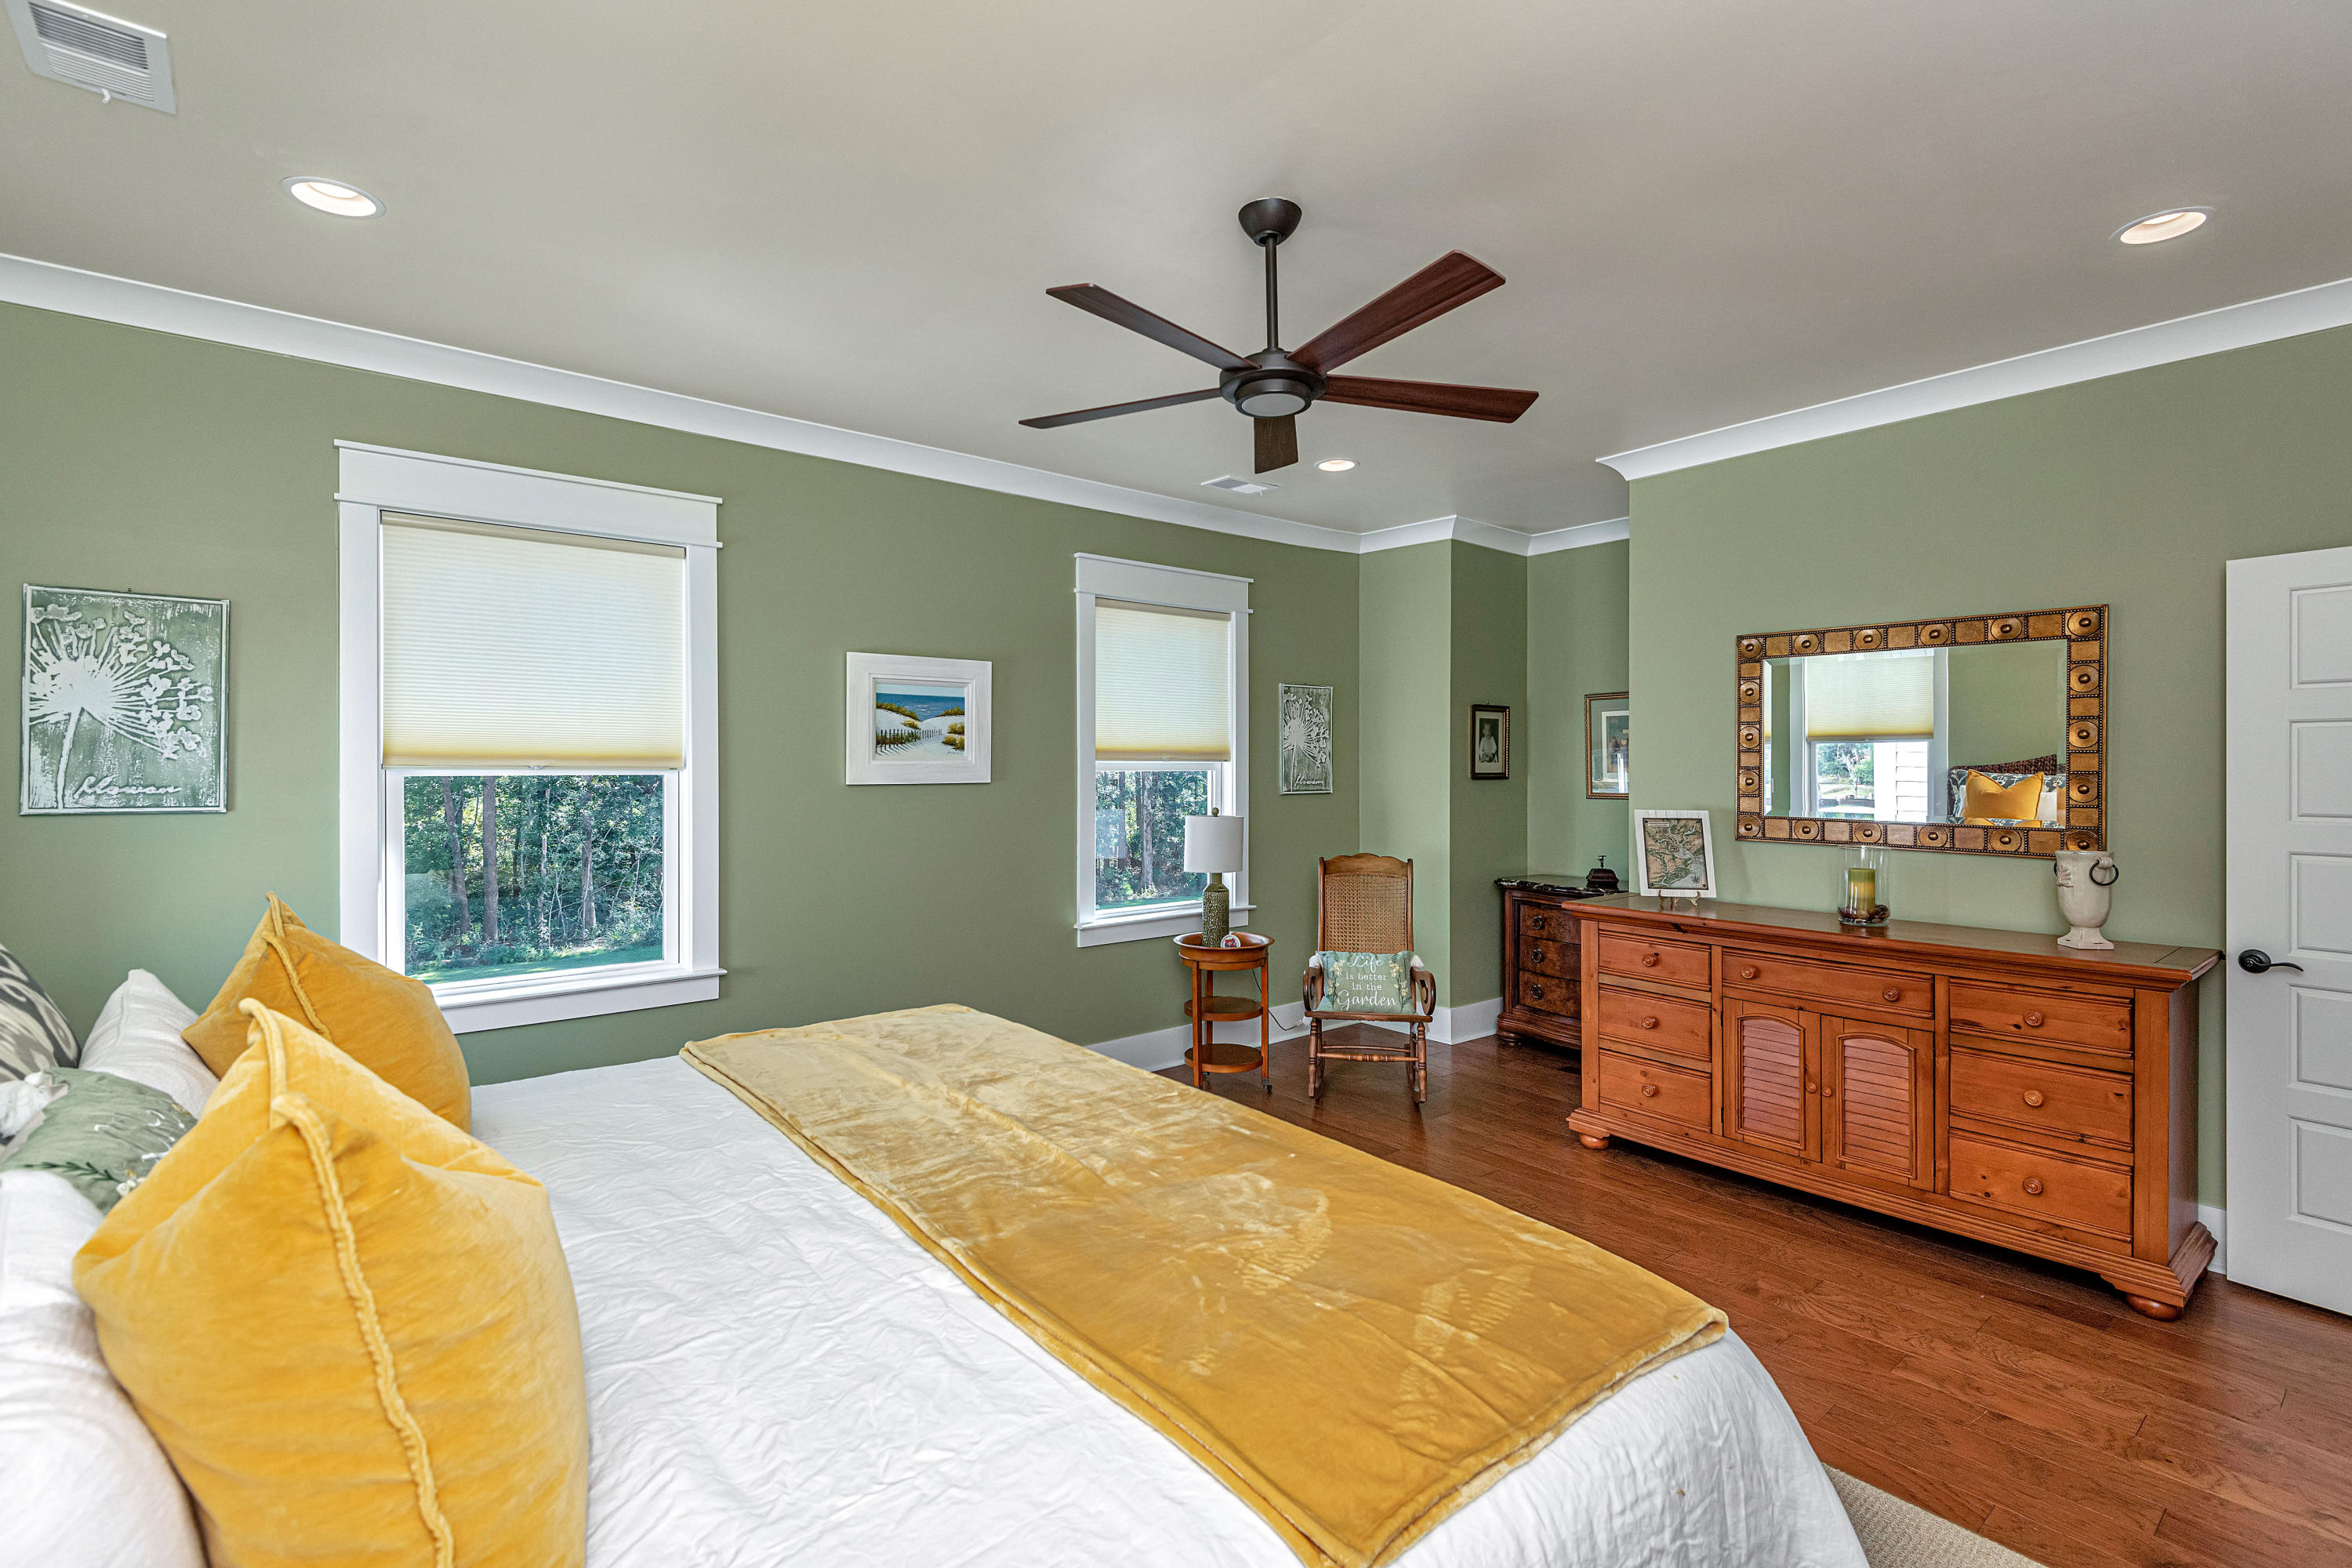 Dunes West Homes For Sale - 2870 Clearwater, Mount Pleasant, SC - 0